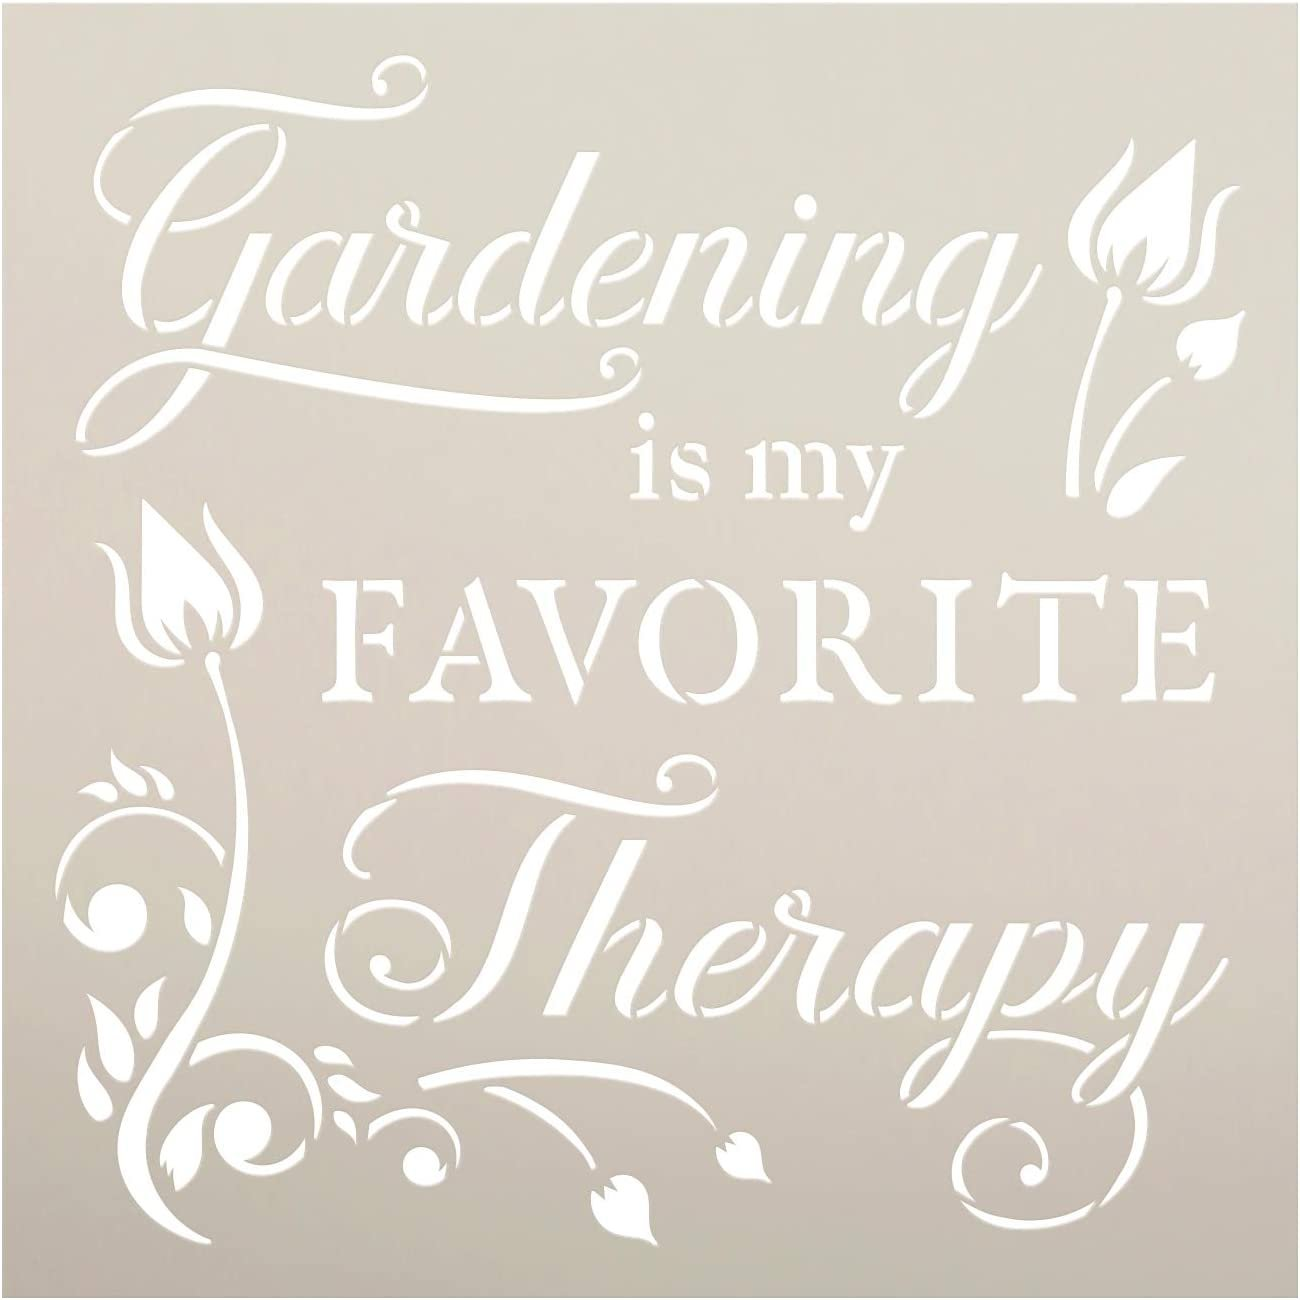 Gardening - Favorite Therapy Stencil by StudioR12 | Reusable Mylar Template | Paint Wood Sign | Craft DIY Flower Home Decor | Cursive Script Nature Gift - Porch | Select Size